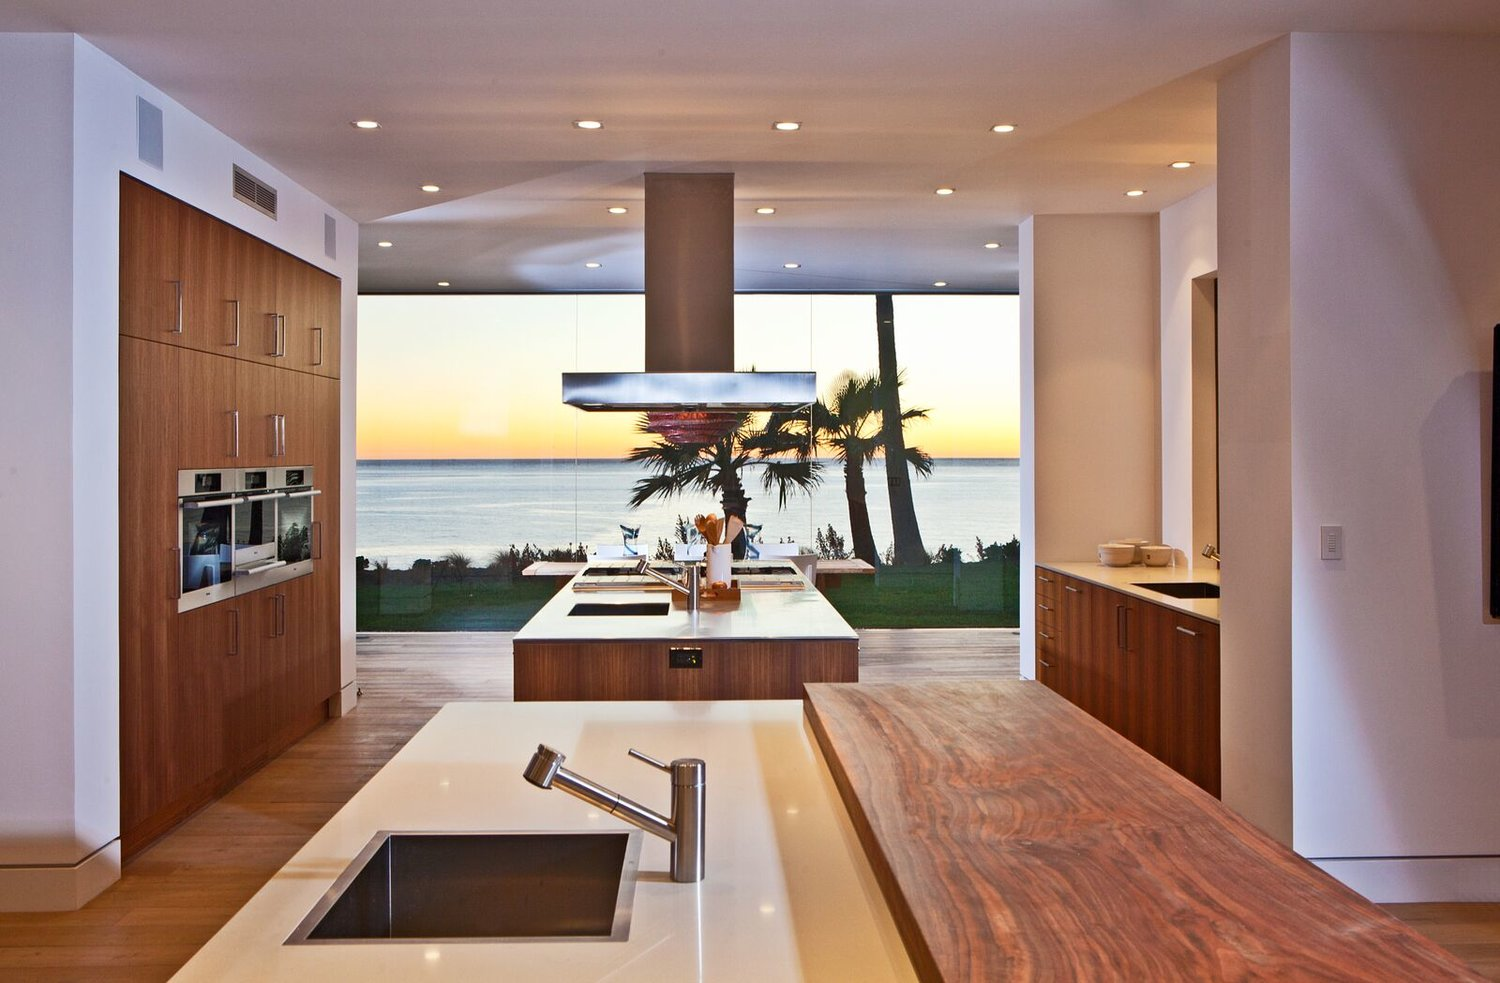 Birdview Residence in Malibu by Doug Burdge